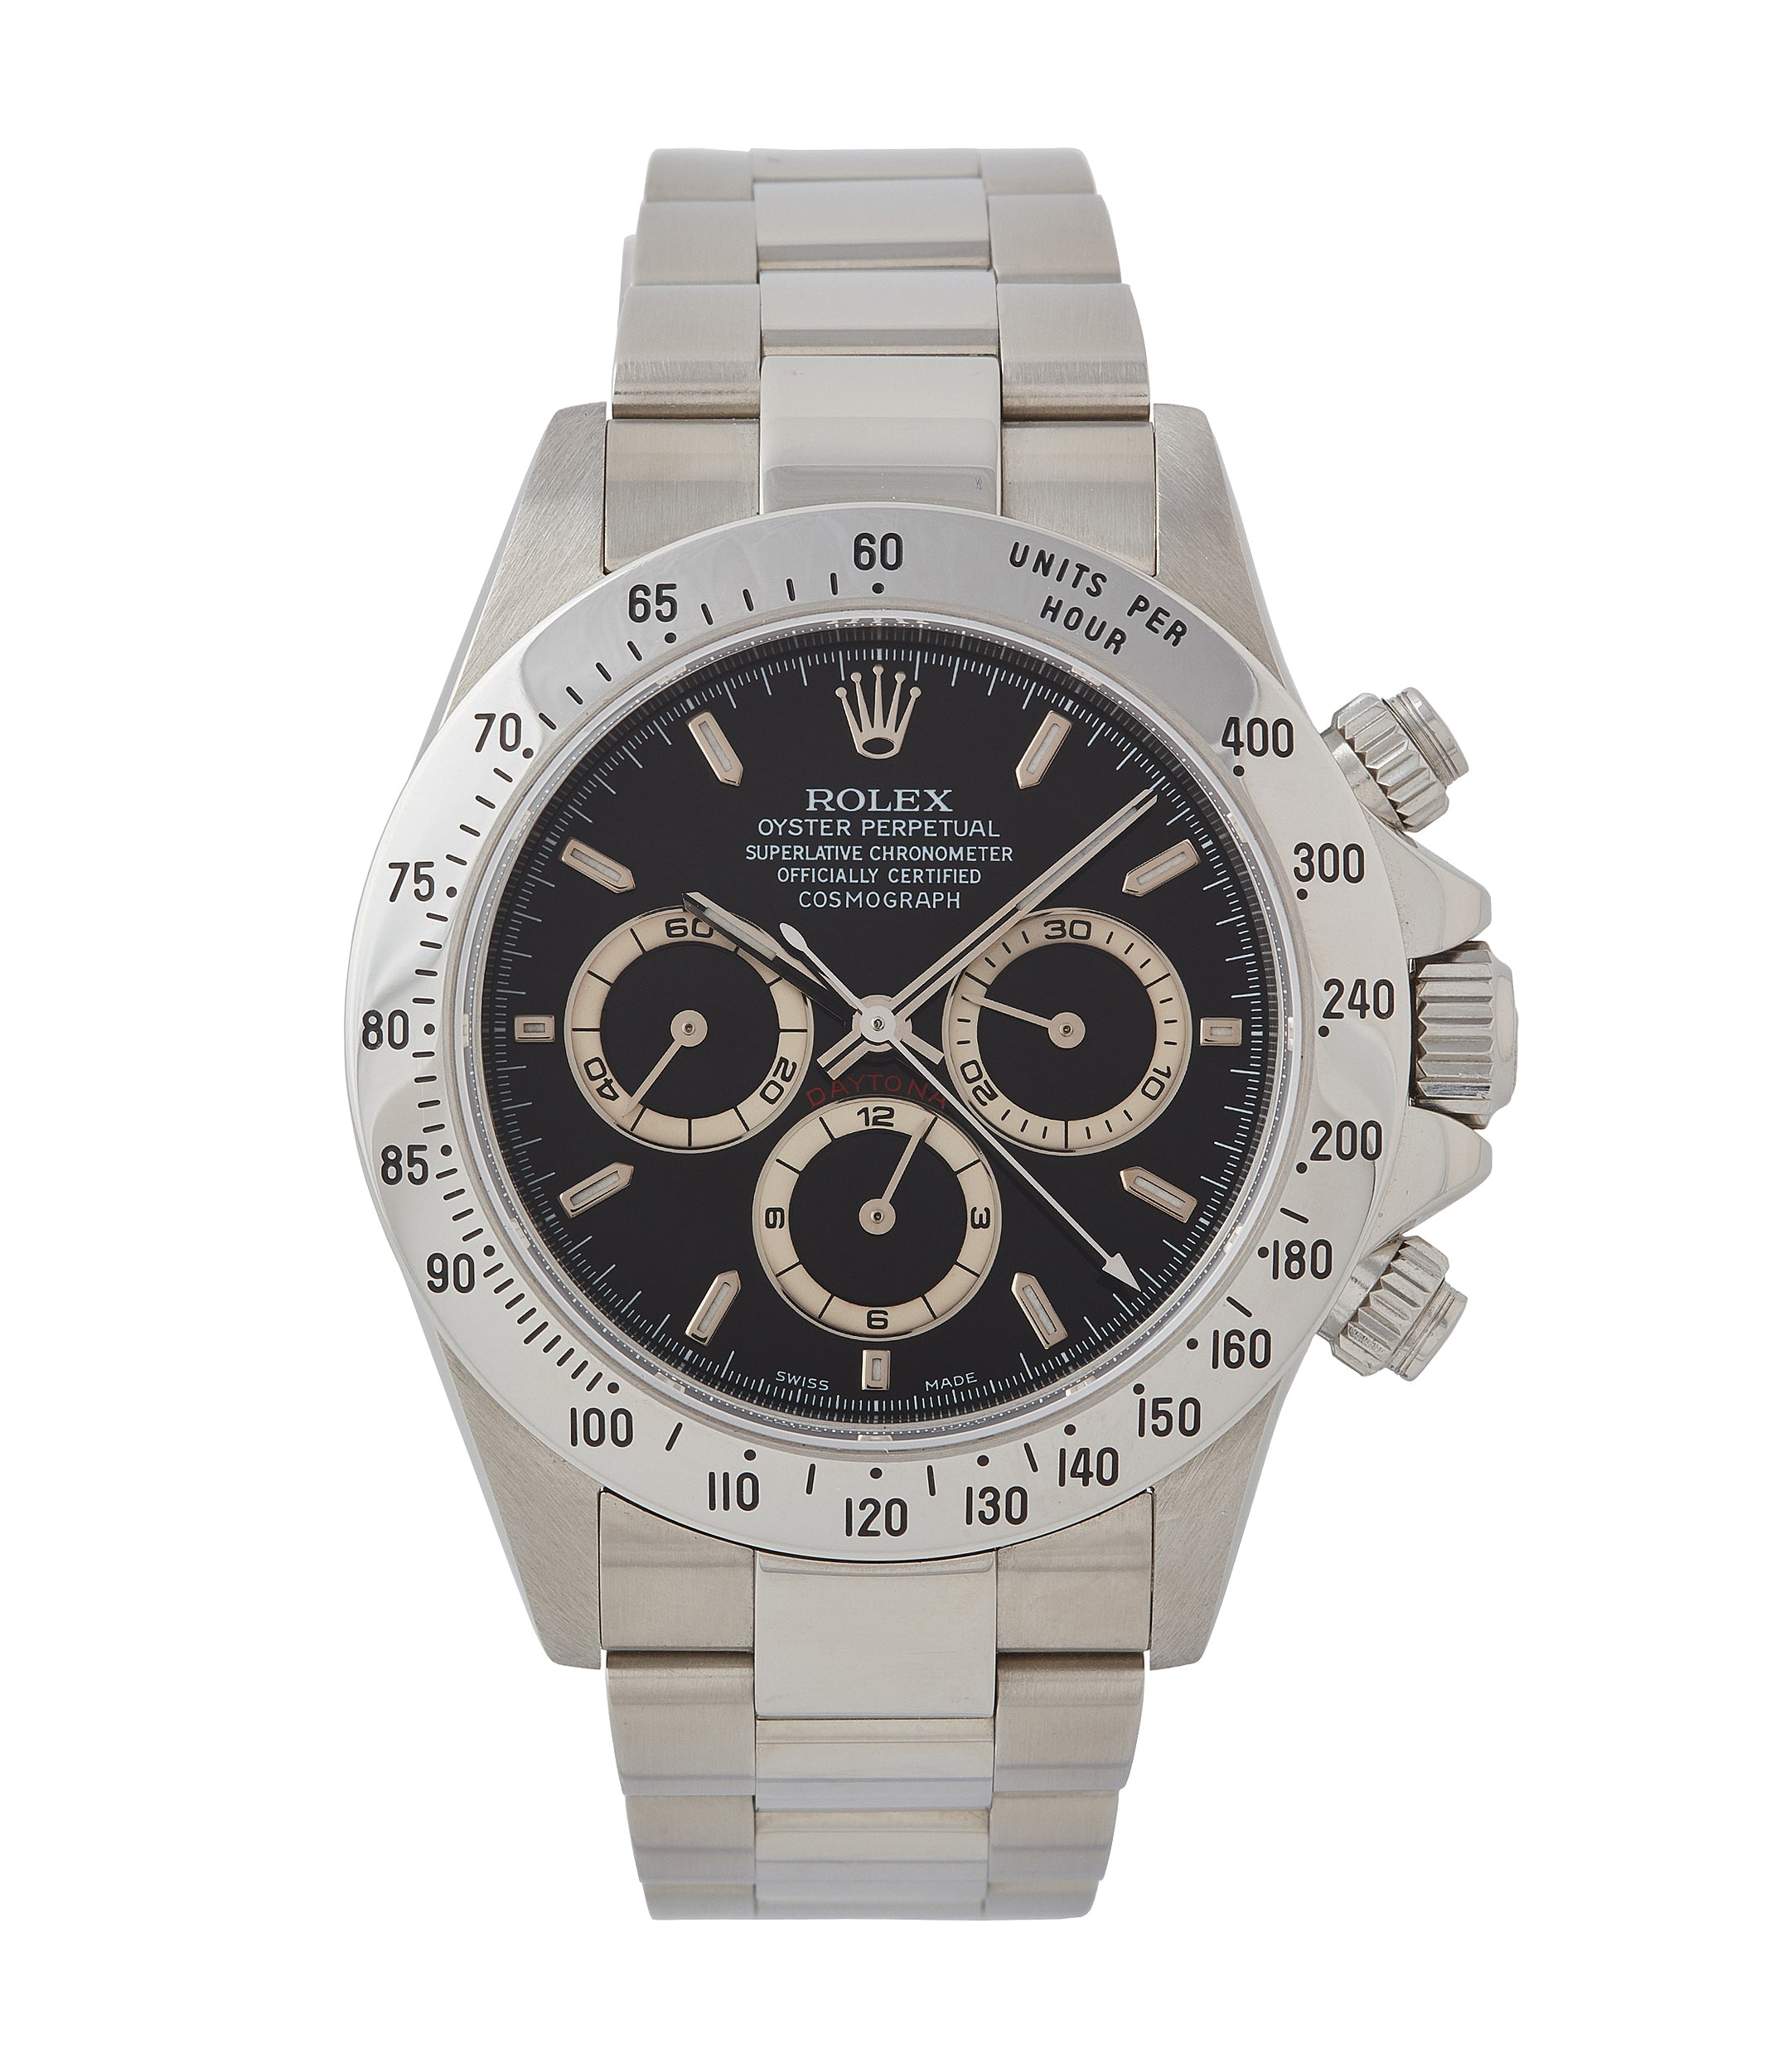 buy vintage Rolex Zenith Daytona 16520 P series steel chronograph watch black dial for sale online at A Collected Man London UK specialist of rare watches